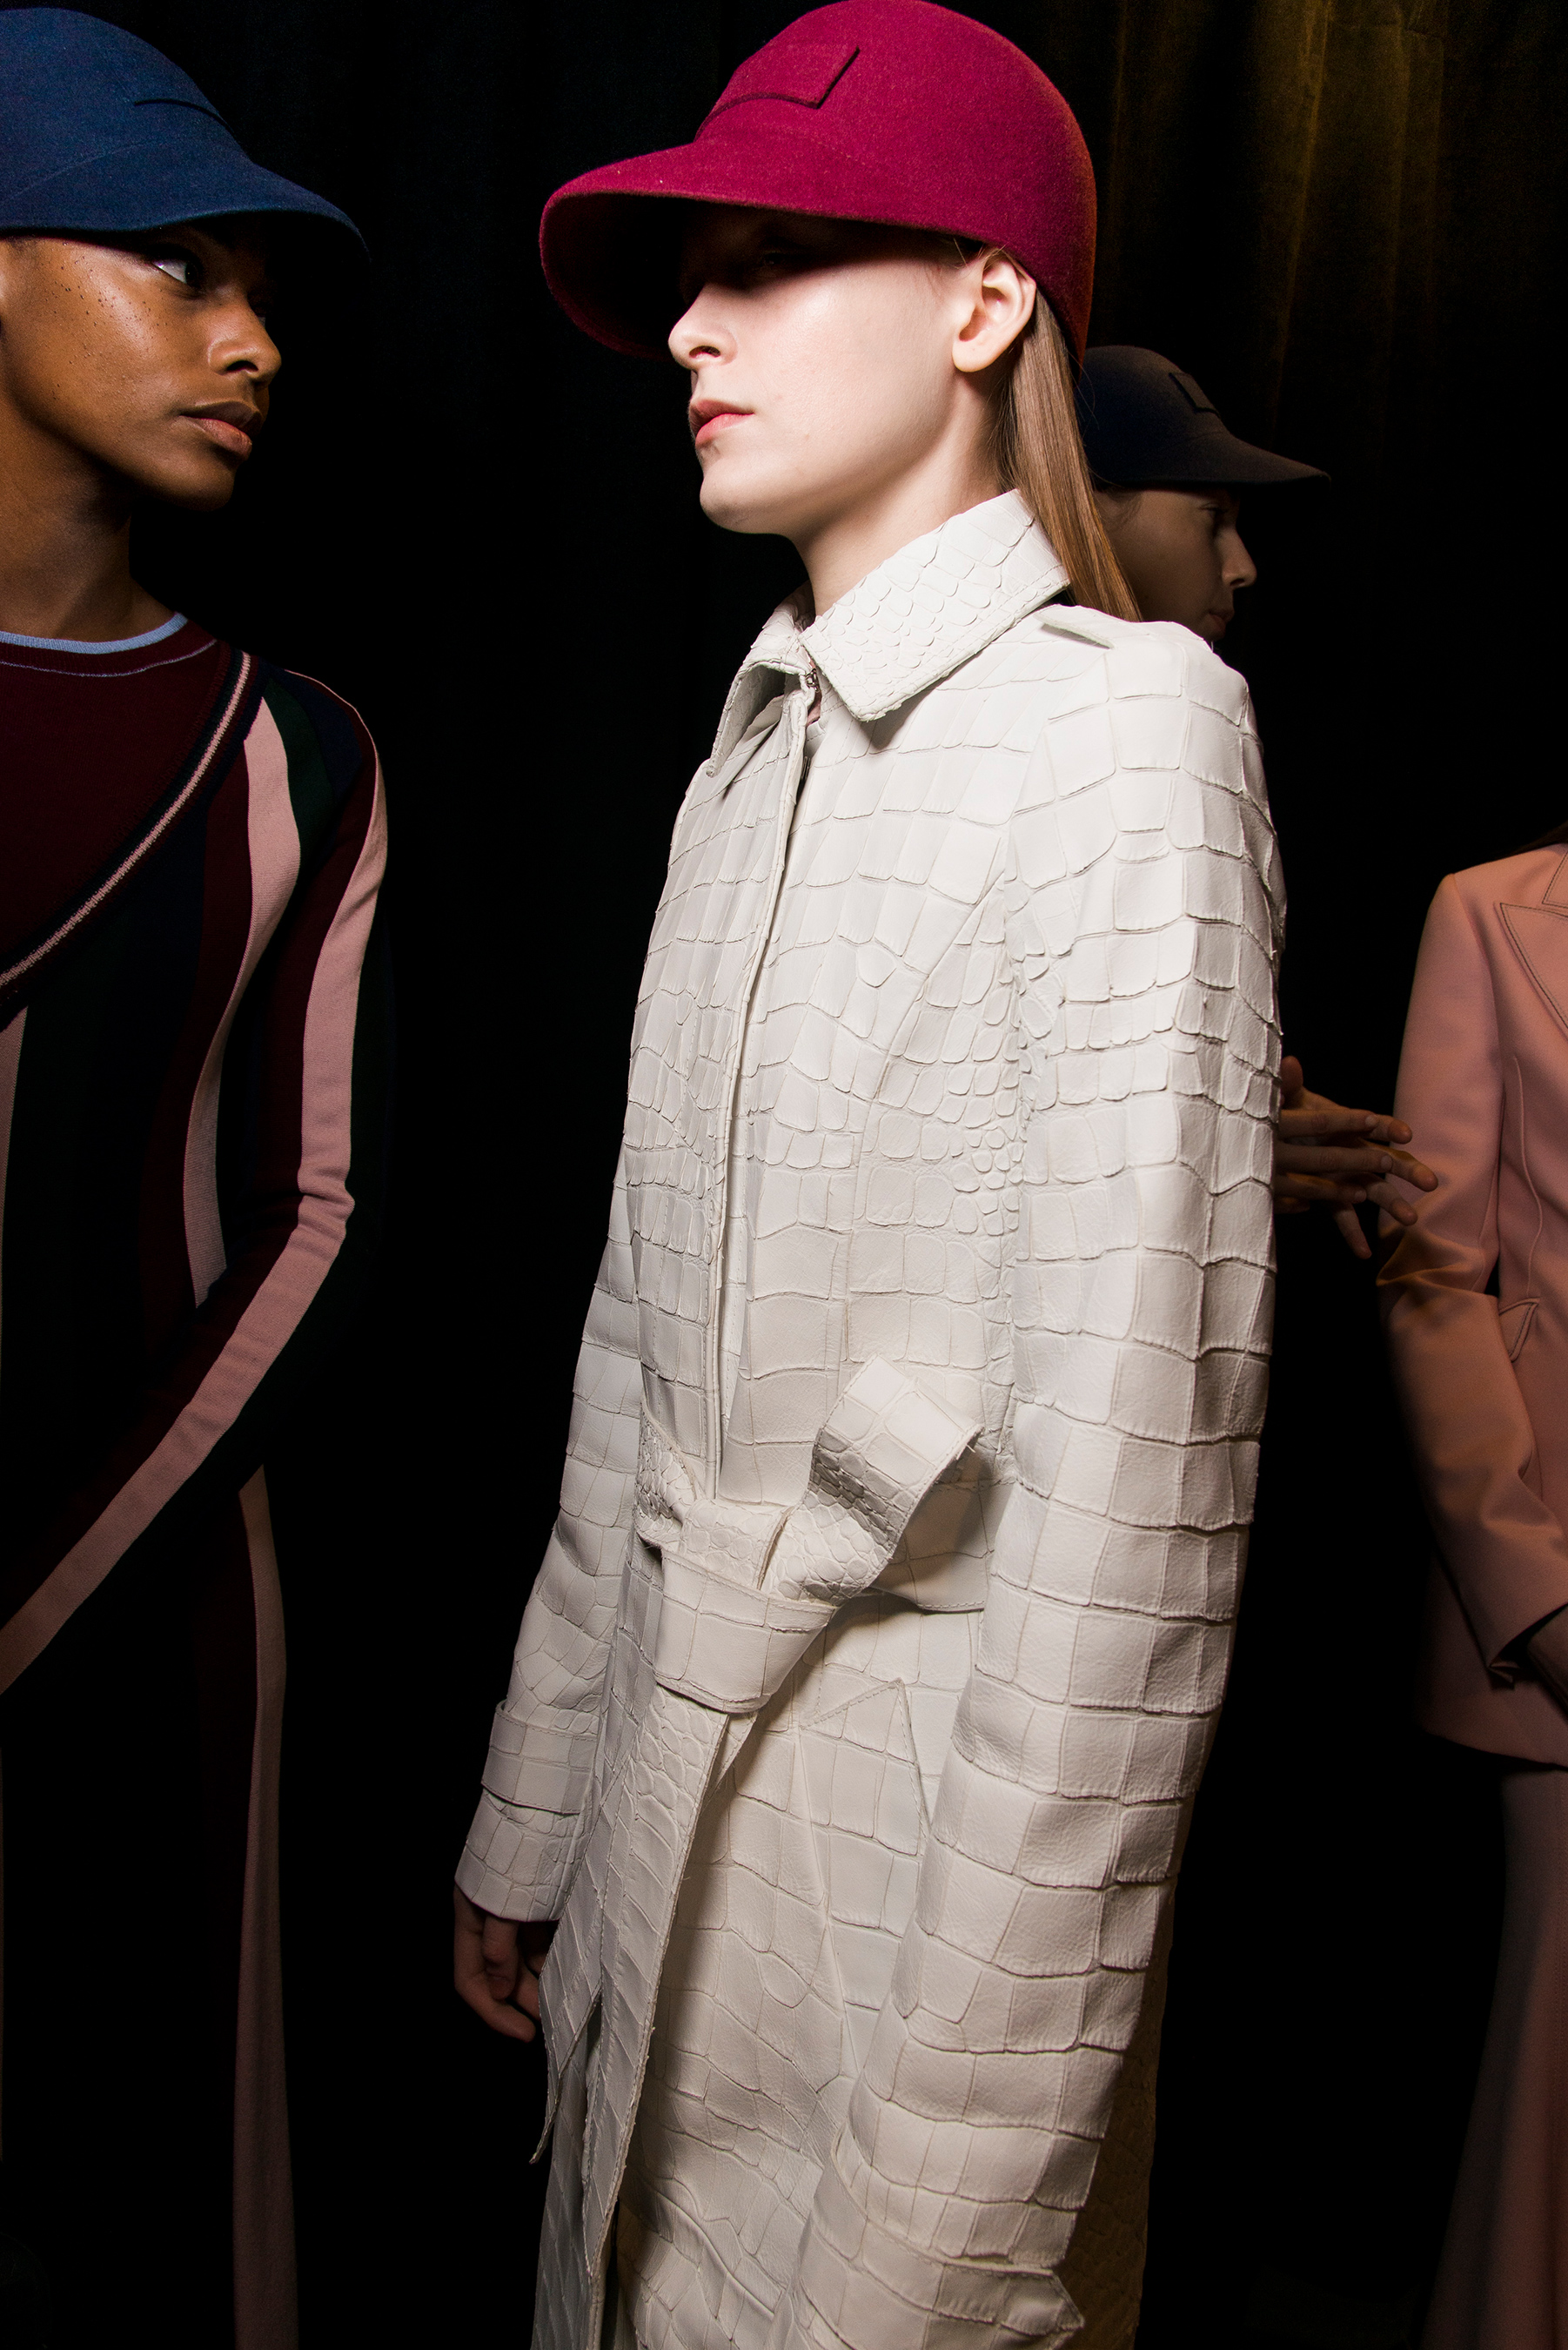 1b4cf6e2a58b Alexander Wang, Jason Wu, Jonathan Simkhai, Zadig & Voltaire, and Gabriela  Hearst have put their spin on work wear with their powerful displays  inspired by ...